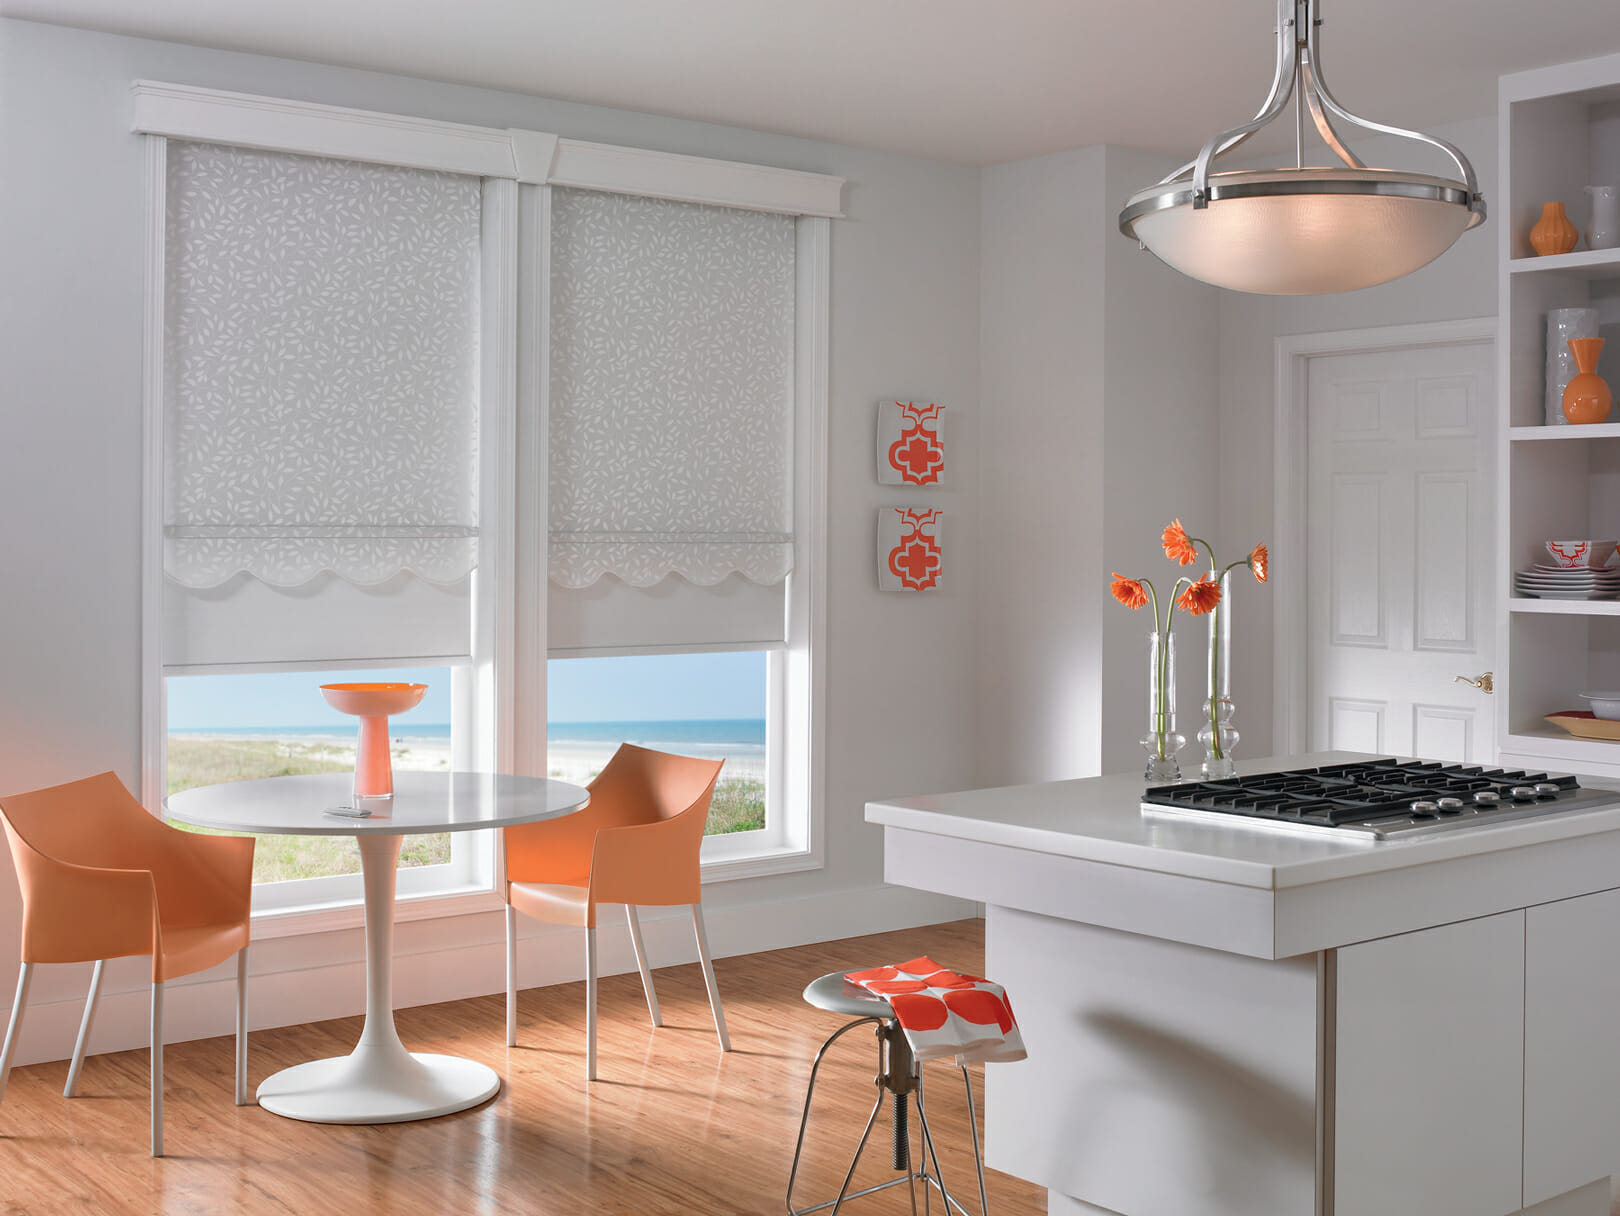 Superbe White Fabric Roll Shades In Kitchen From Graber Productid Gds0802 Rn110909ca